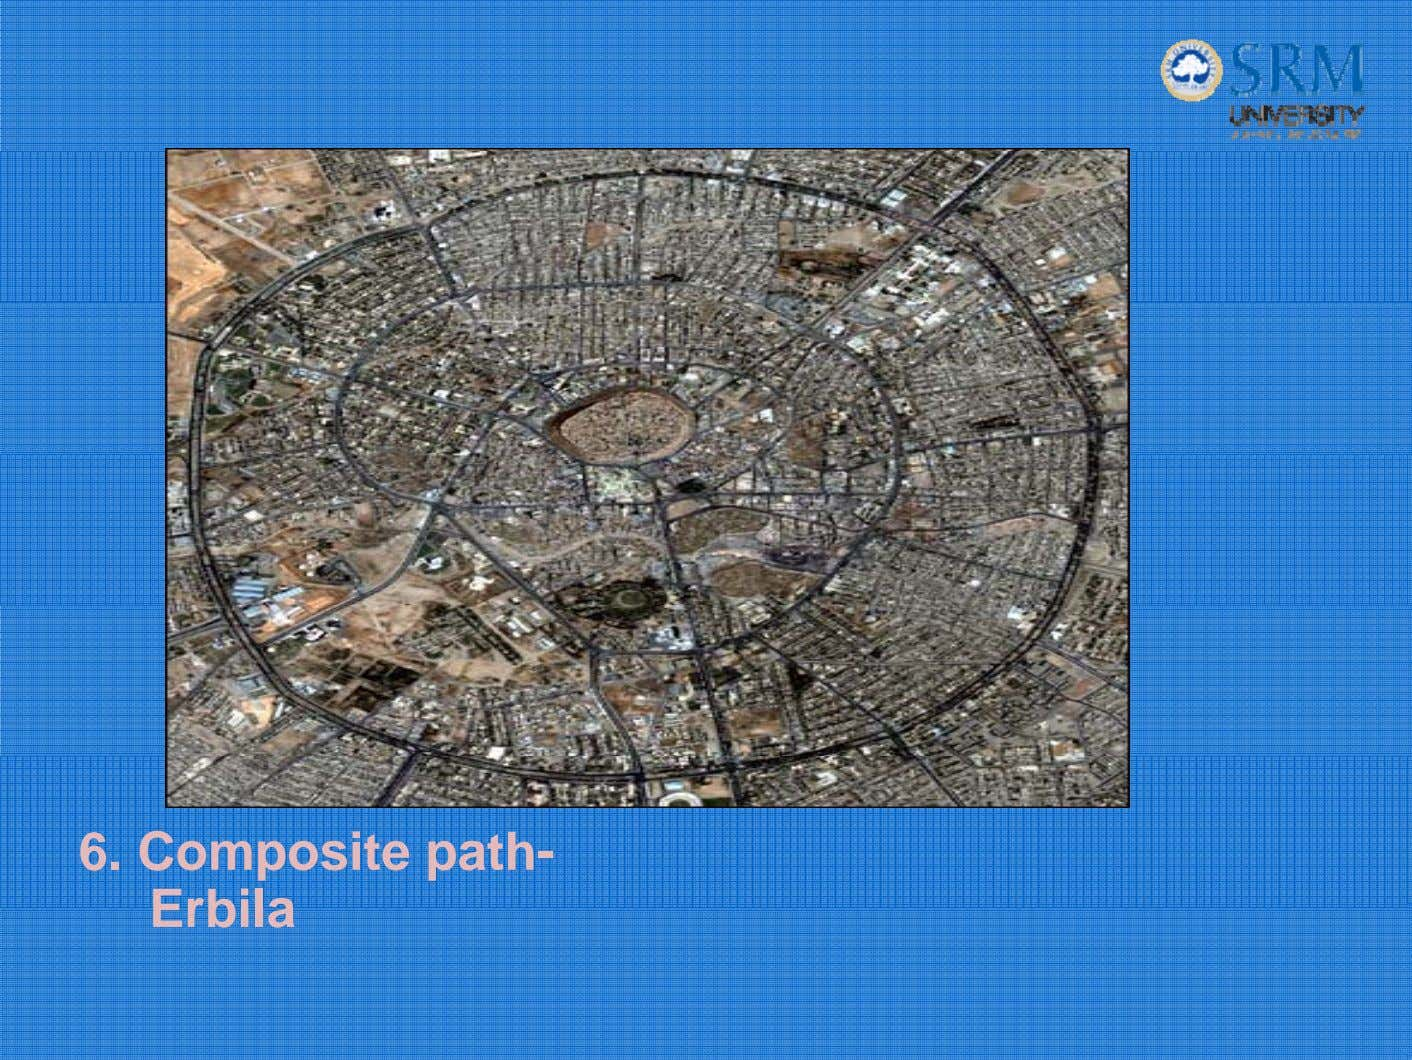 6. Composite path- Erbila